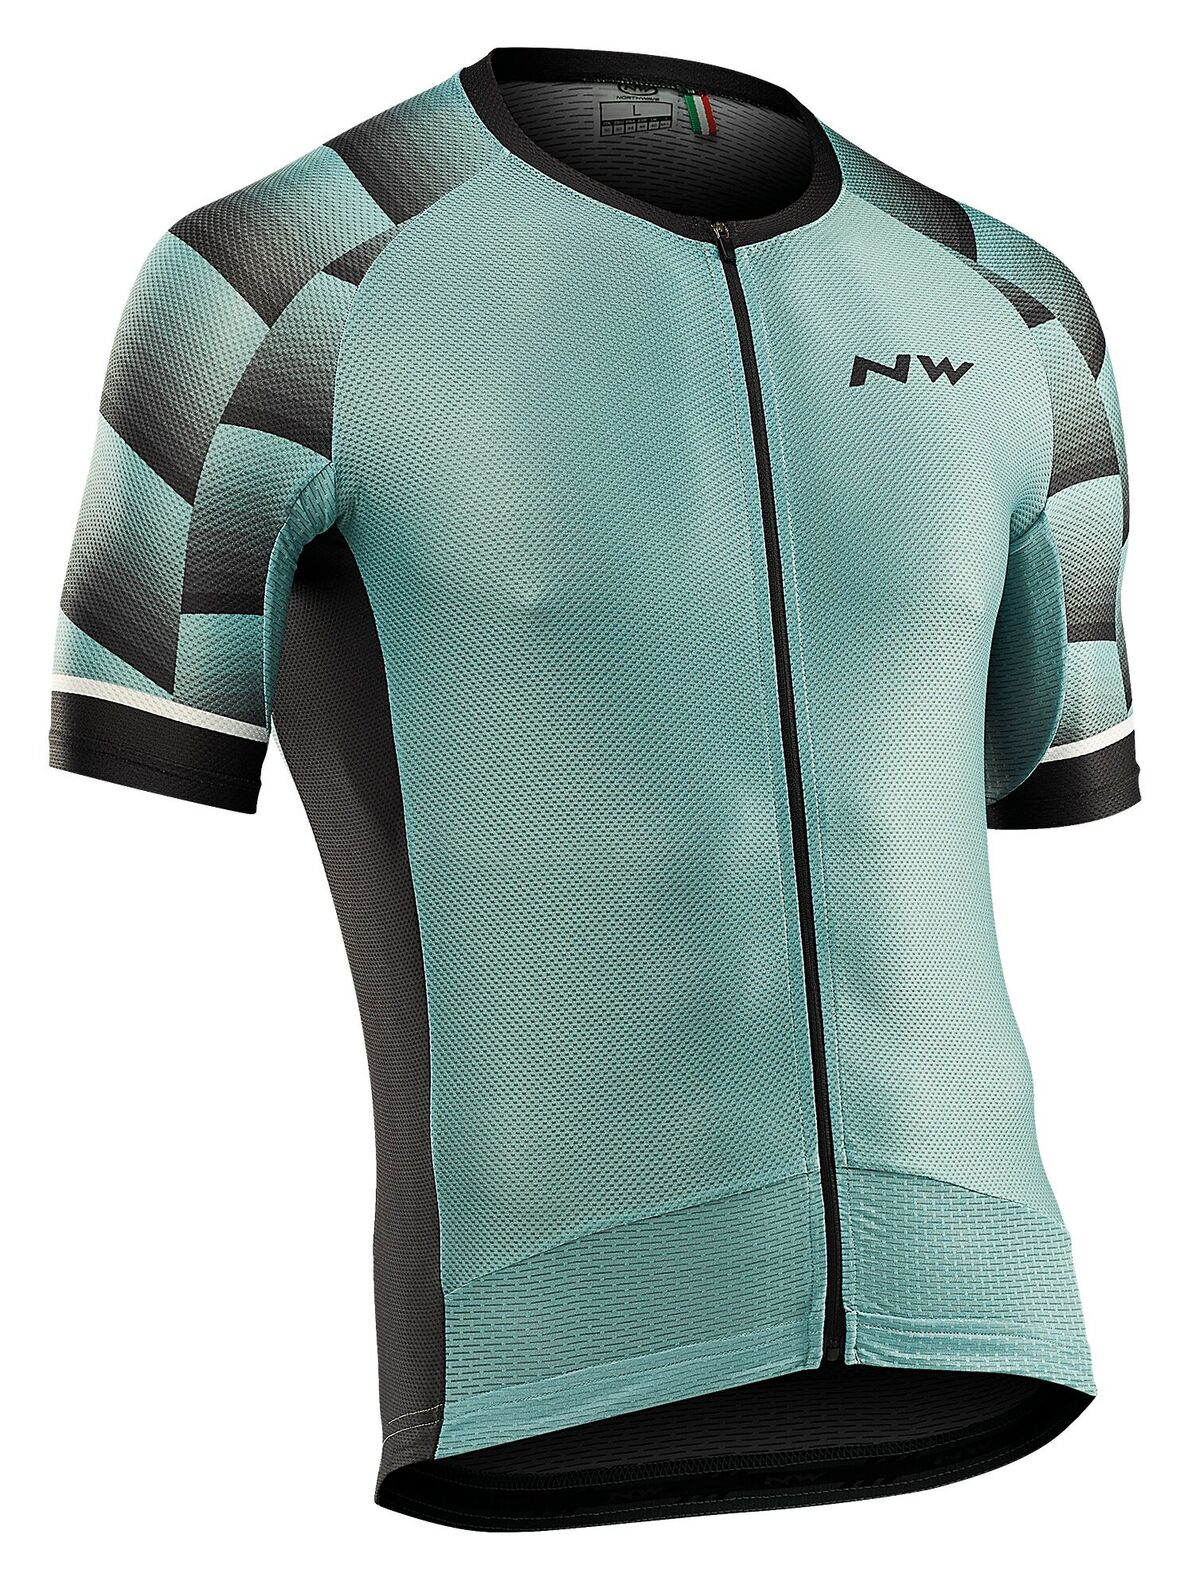 Maglia Ciclismo Maniche Corte Northwave Storm Air Jersey Short Sleeves SALVIA